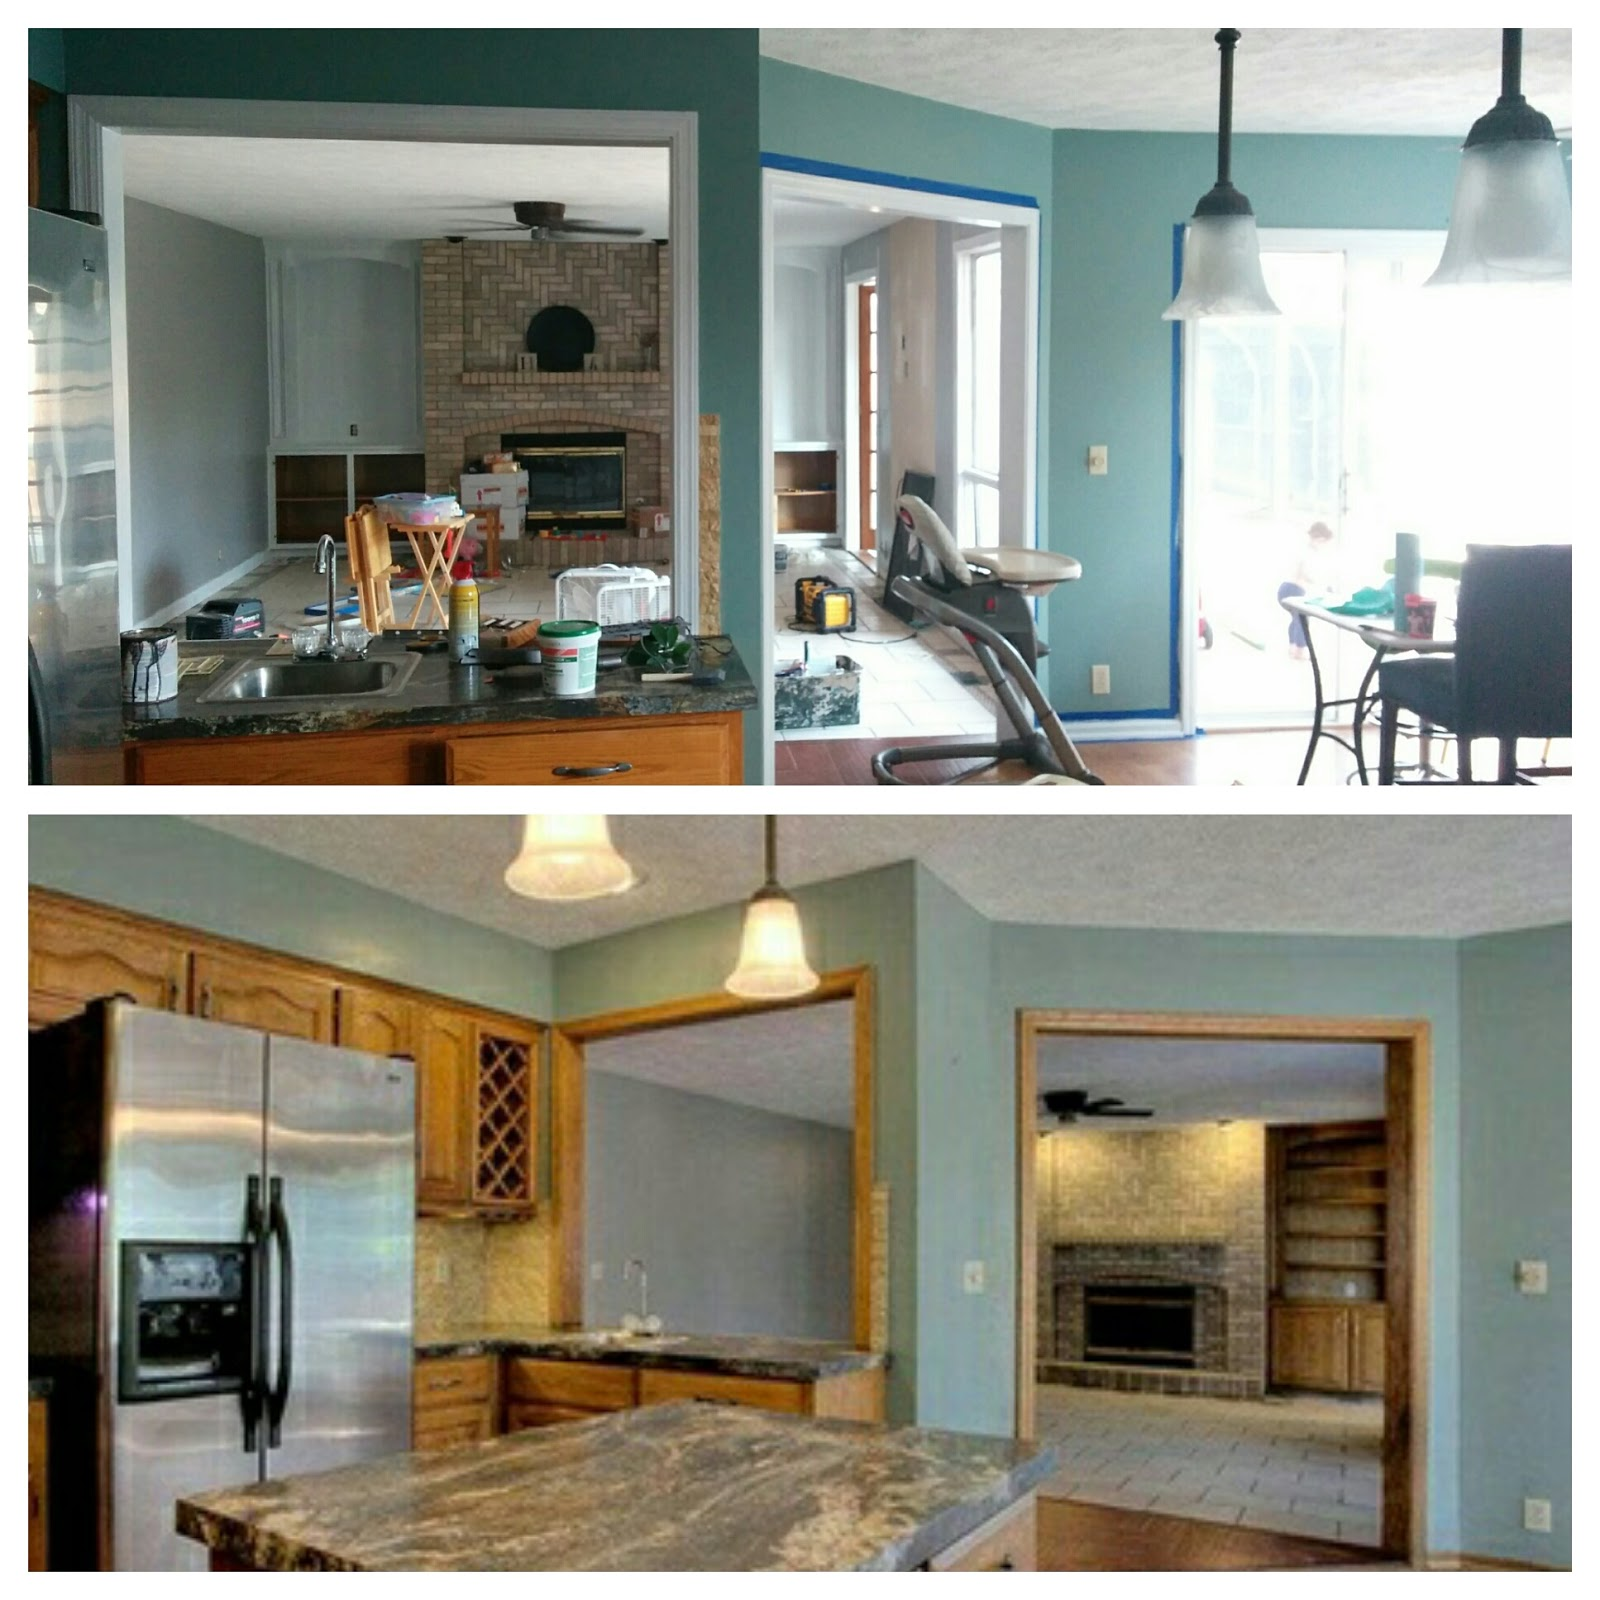 Painting Wood Trim White Before And After: You Are My Licorice: Painting The Trim